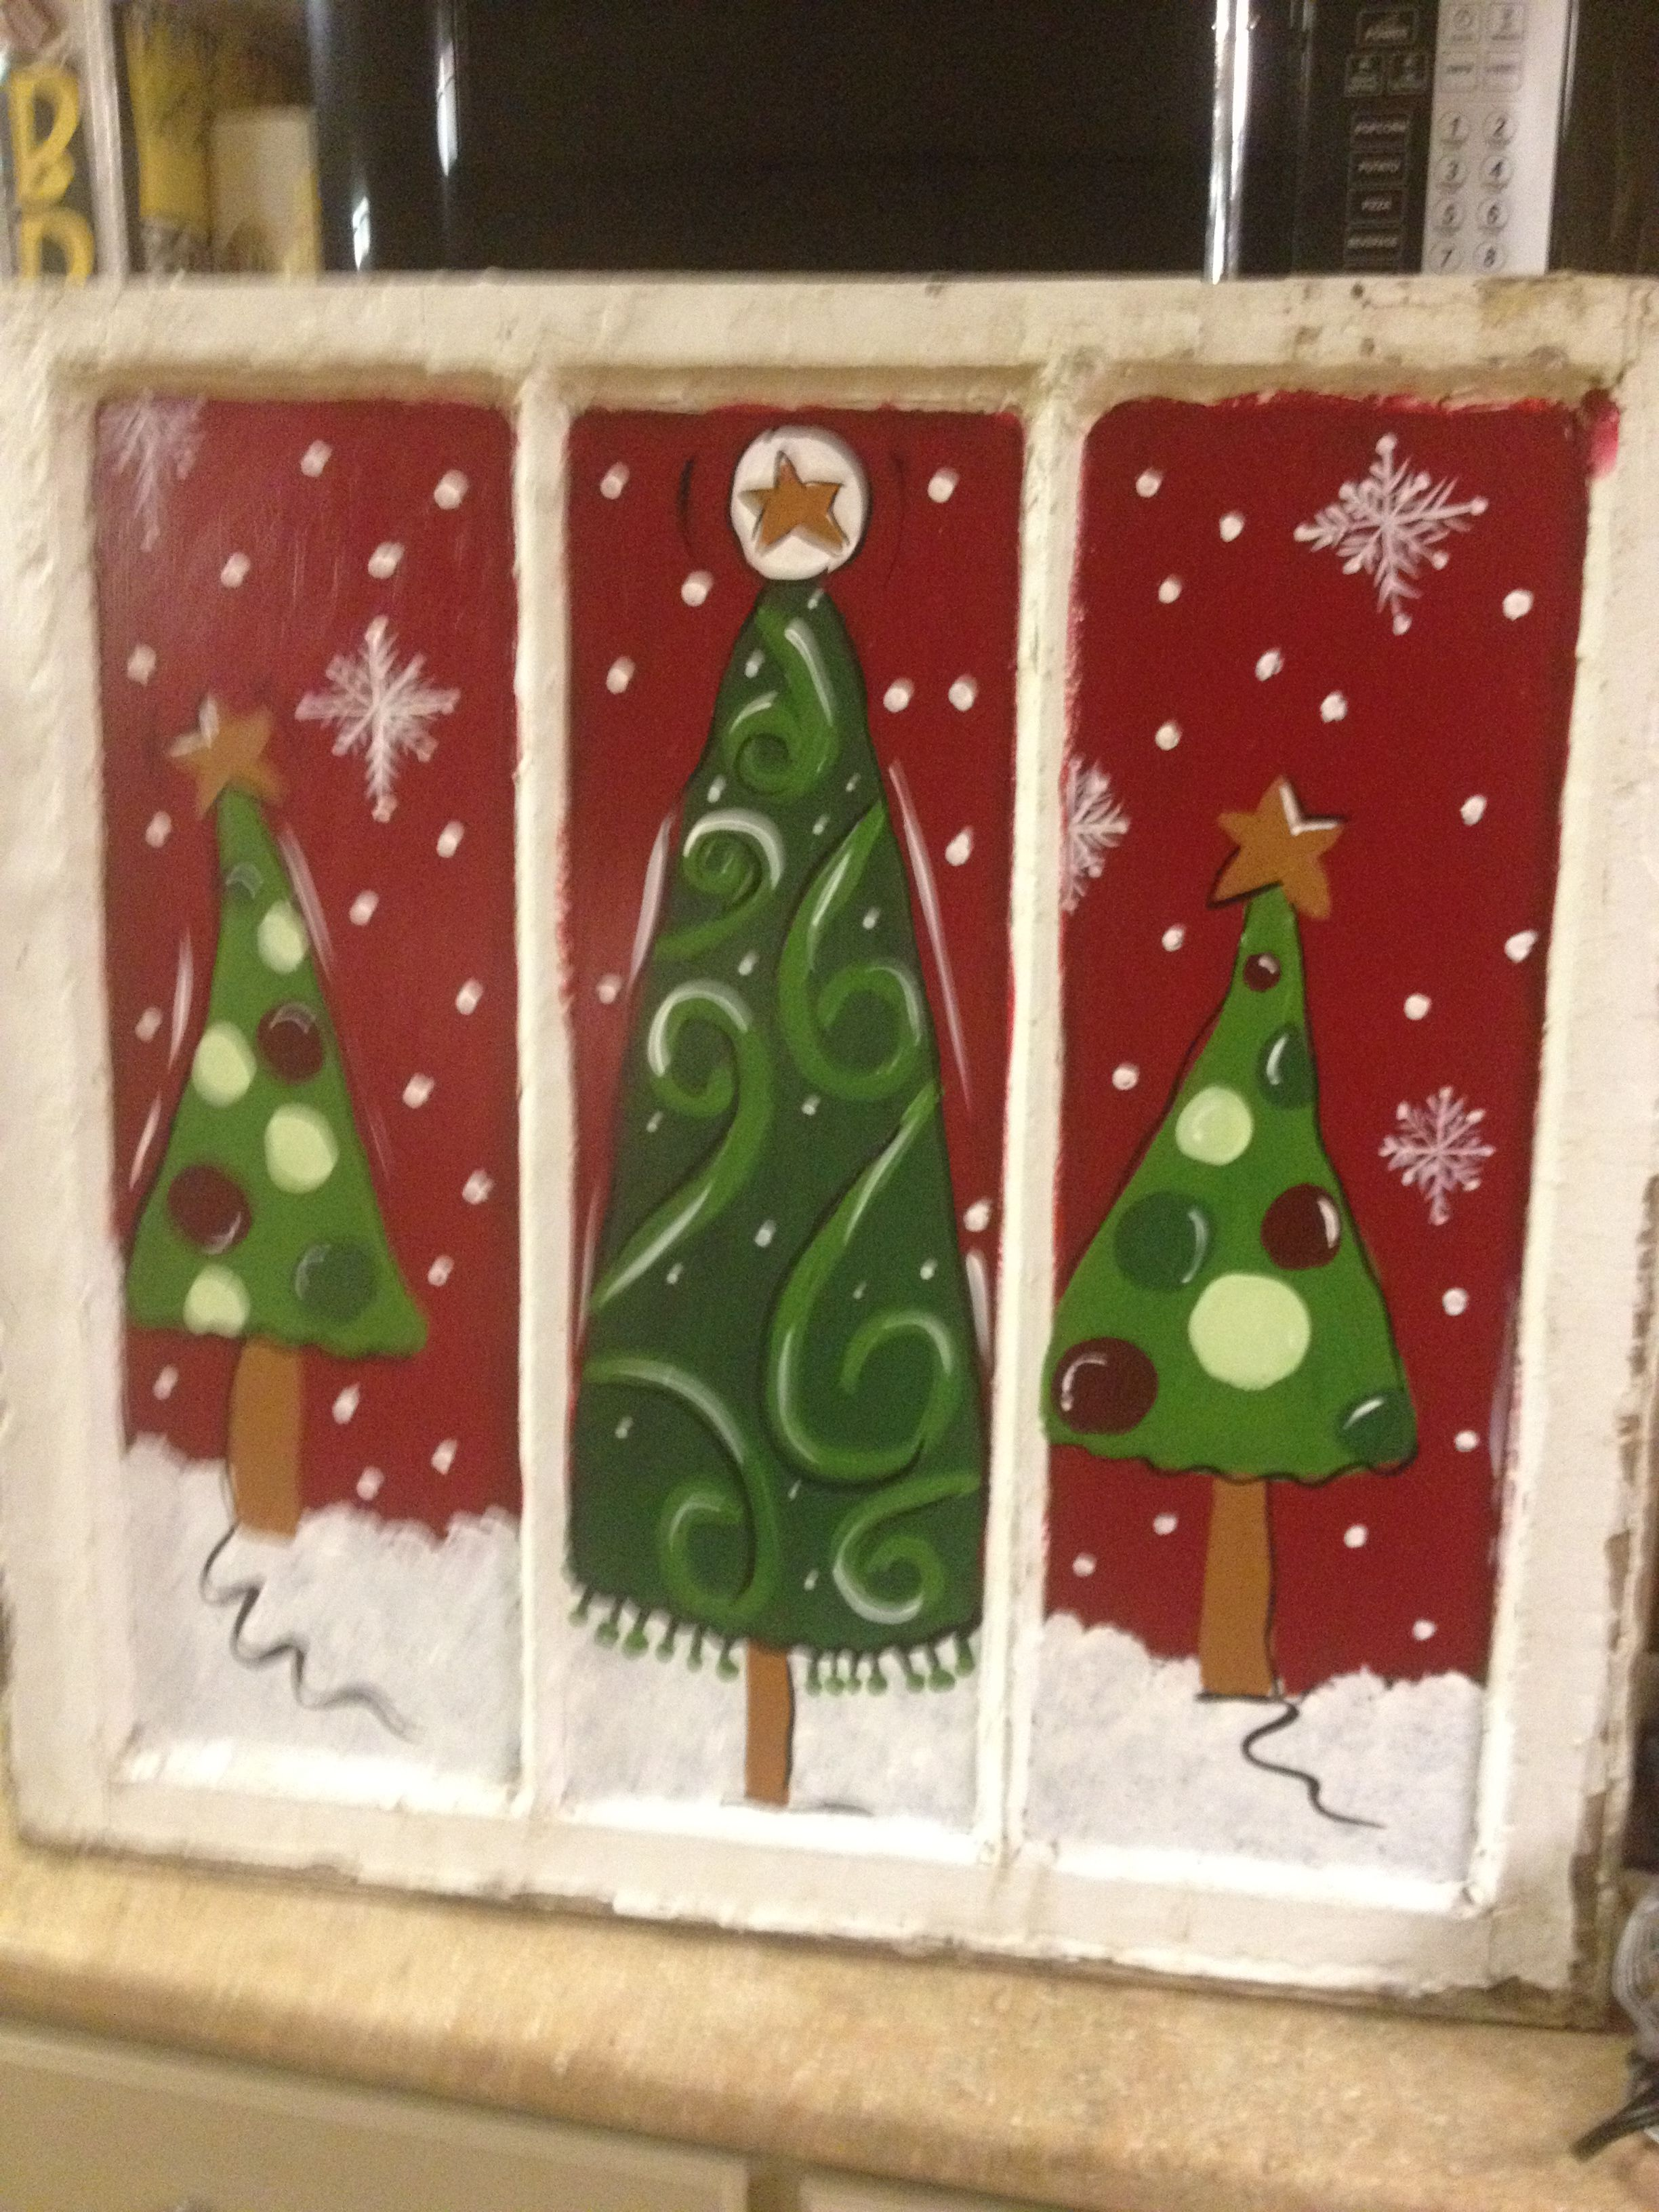 Painted Christmas Window I Painted For Joannie Christmas Window Painting Christmas Paintings Painting On Glass Windows